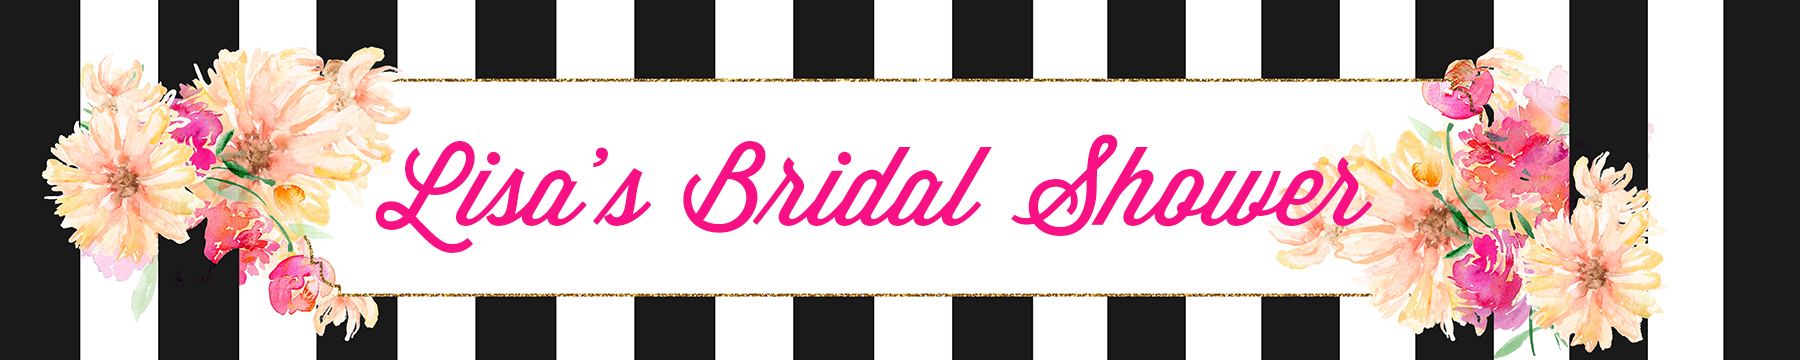 Black and White Stripe Floral Watercolor - Personalized Bridal Shower Banners thumbnail